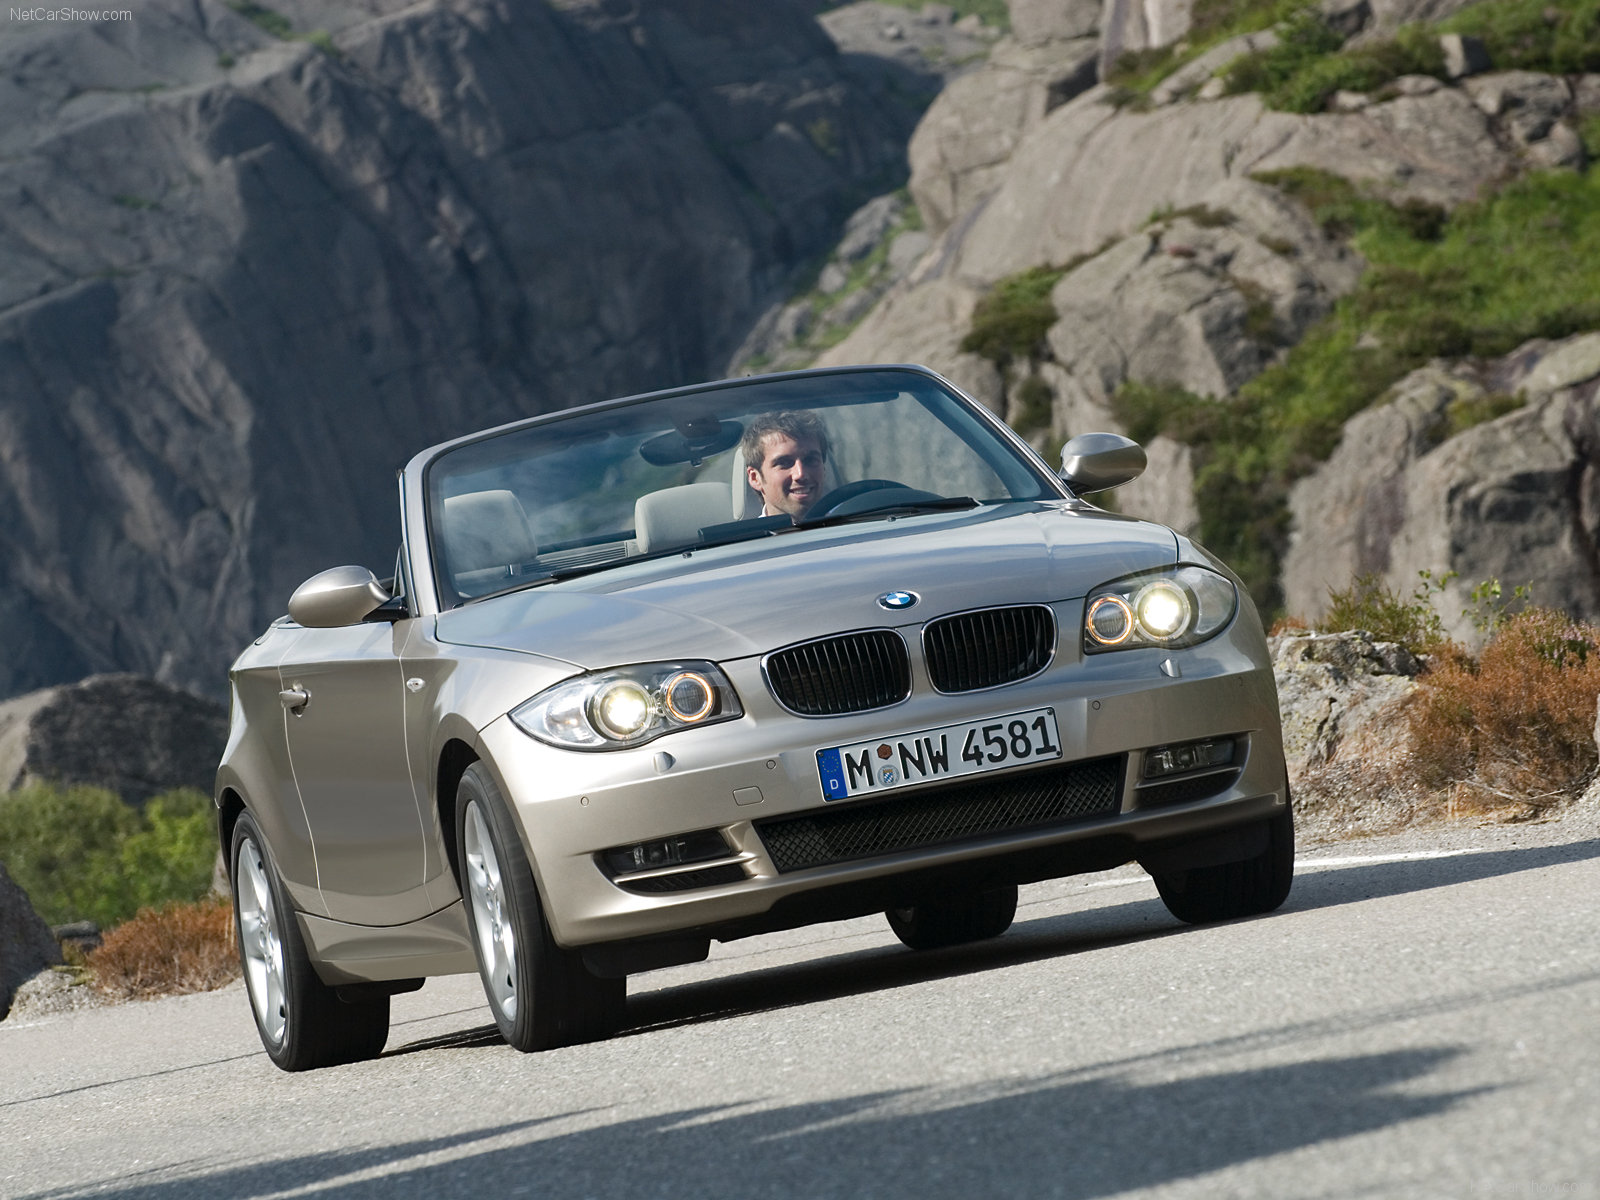 Bmw 3 series convertible front angle road  № 850466 без смс